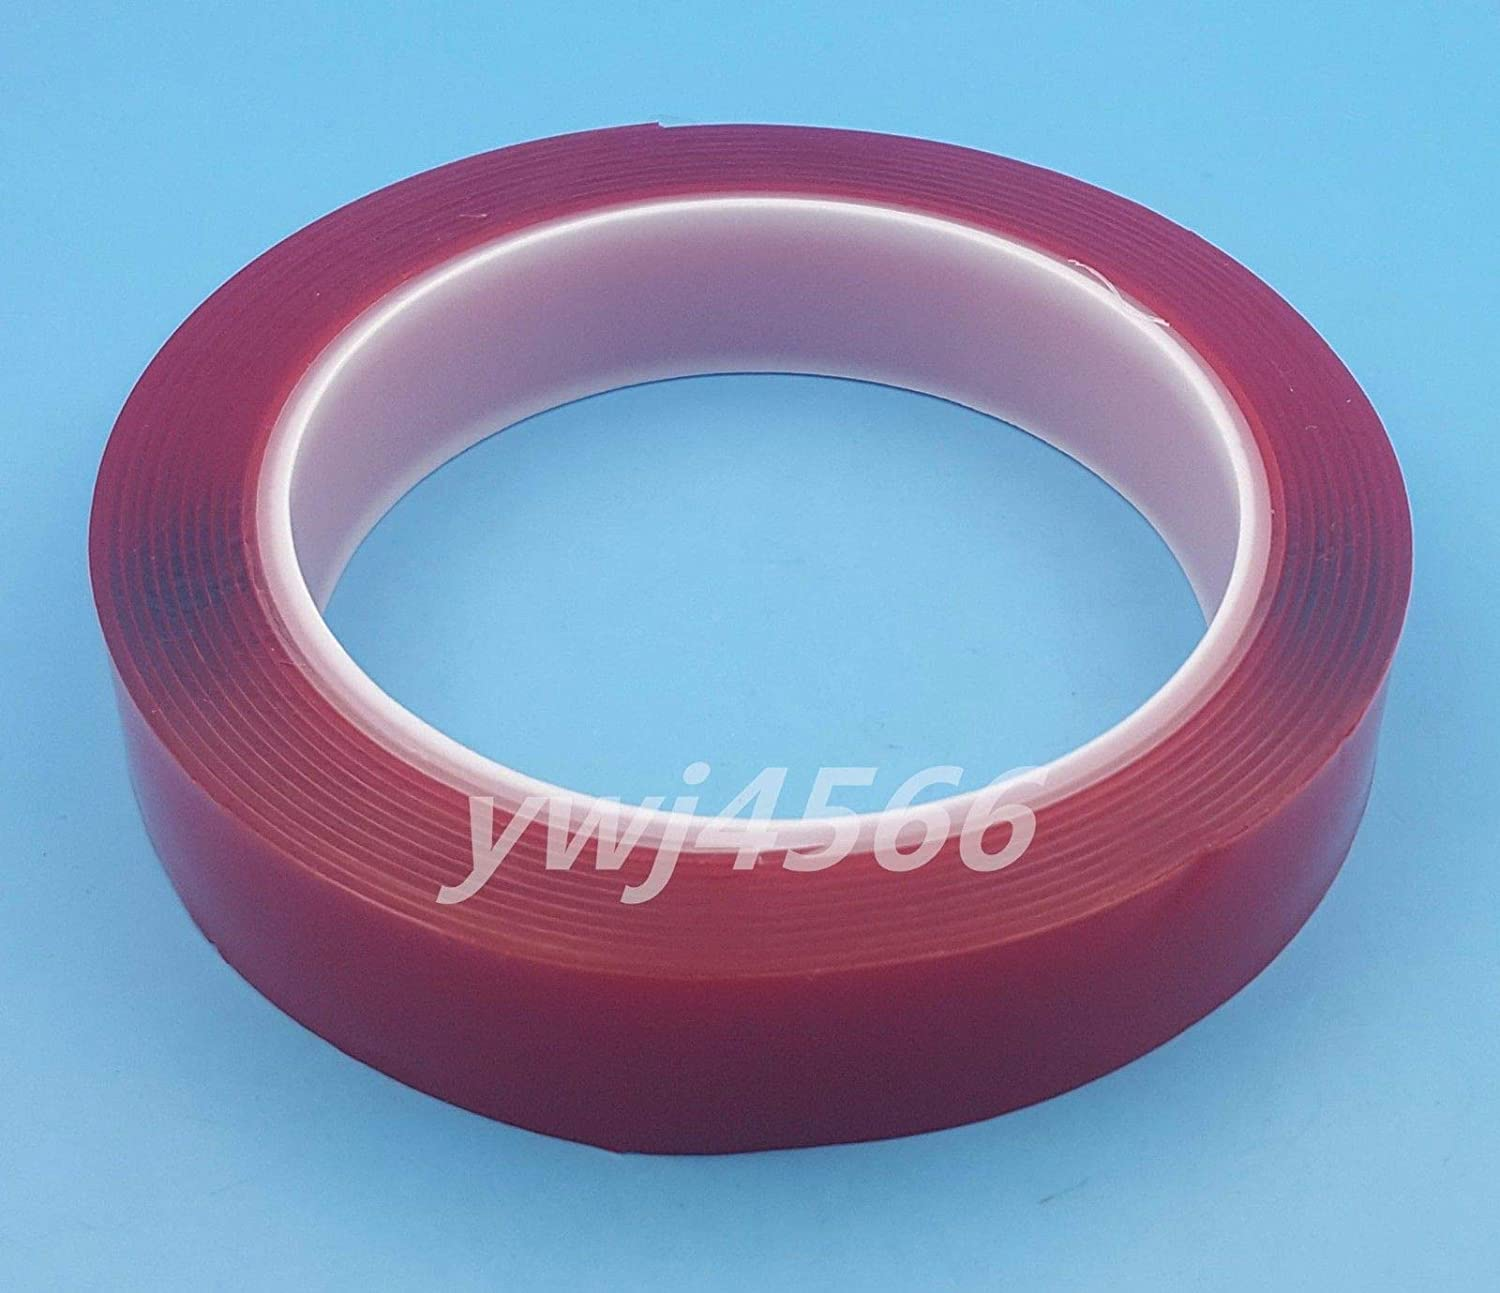 10mm VHB 4910 Double-sided Clear Transparent Acrylic Foam Adhesive Tape 3m S3